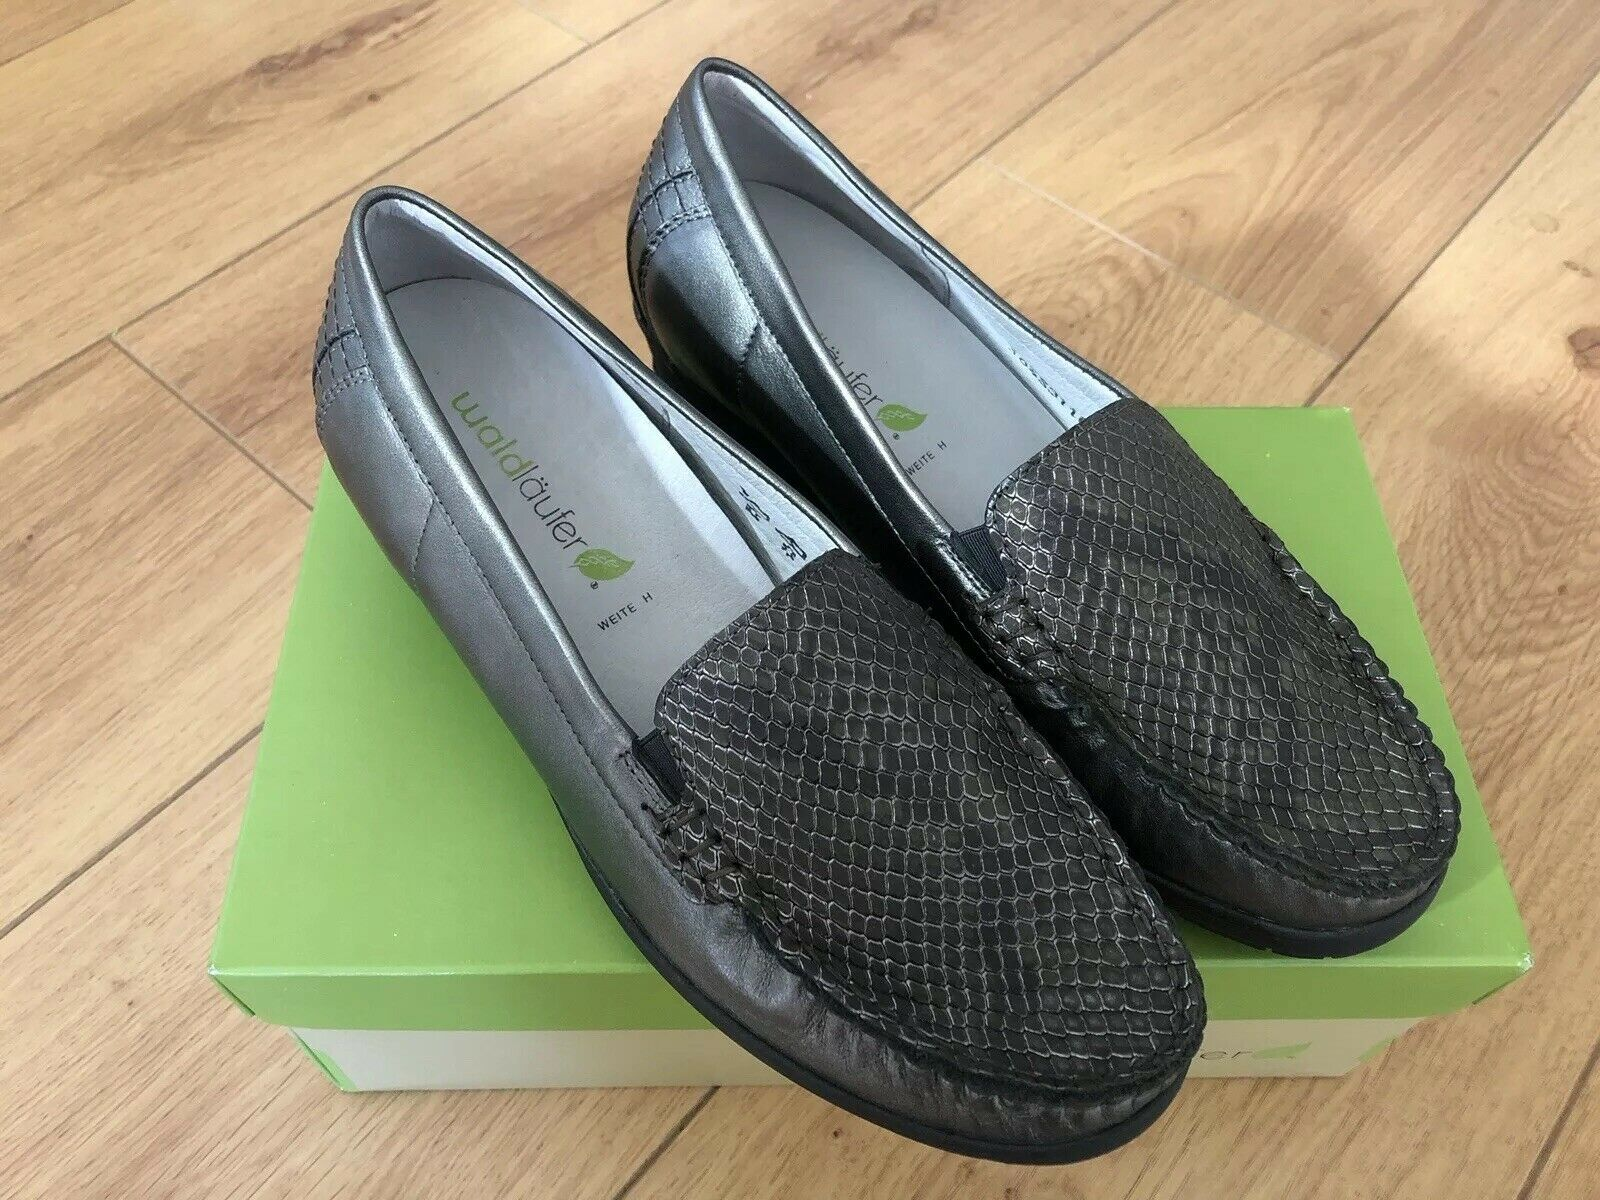 BRAND NEW WALDLAUFER ladies heeled loafer-grey silver faux croc leather UK 7.5 E